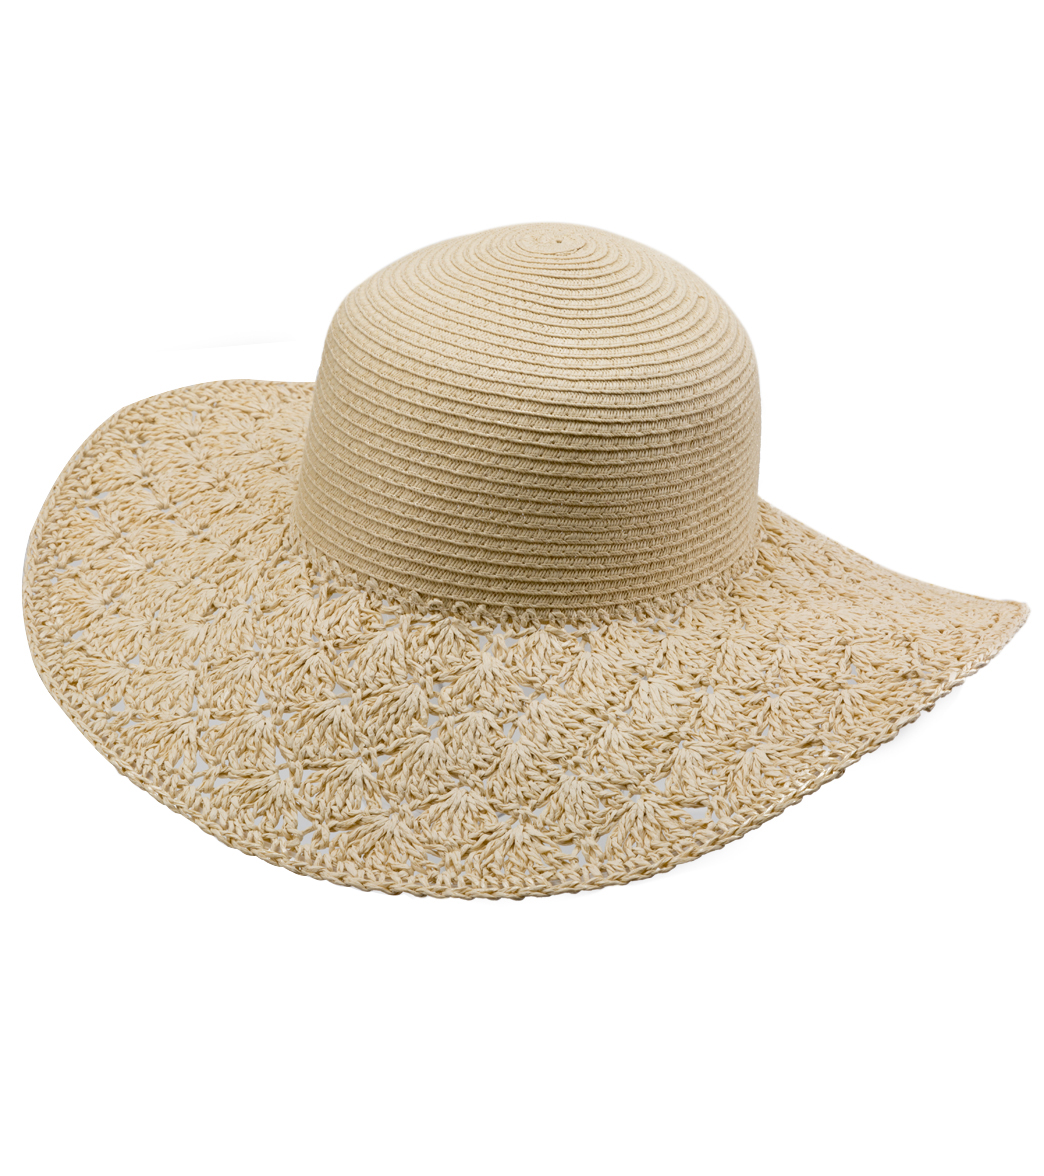 a80a02498ea Roxy Facing The Sun Straw Hat at SwimOutlet.com